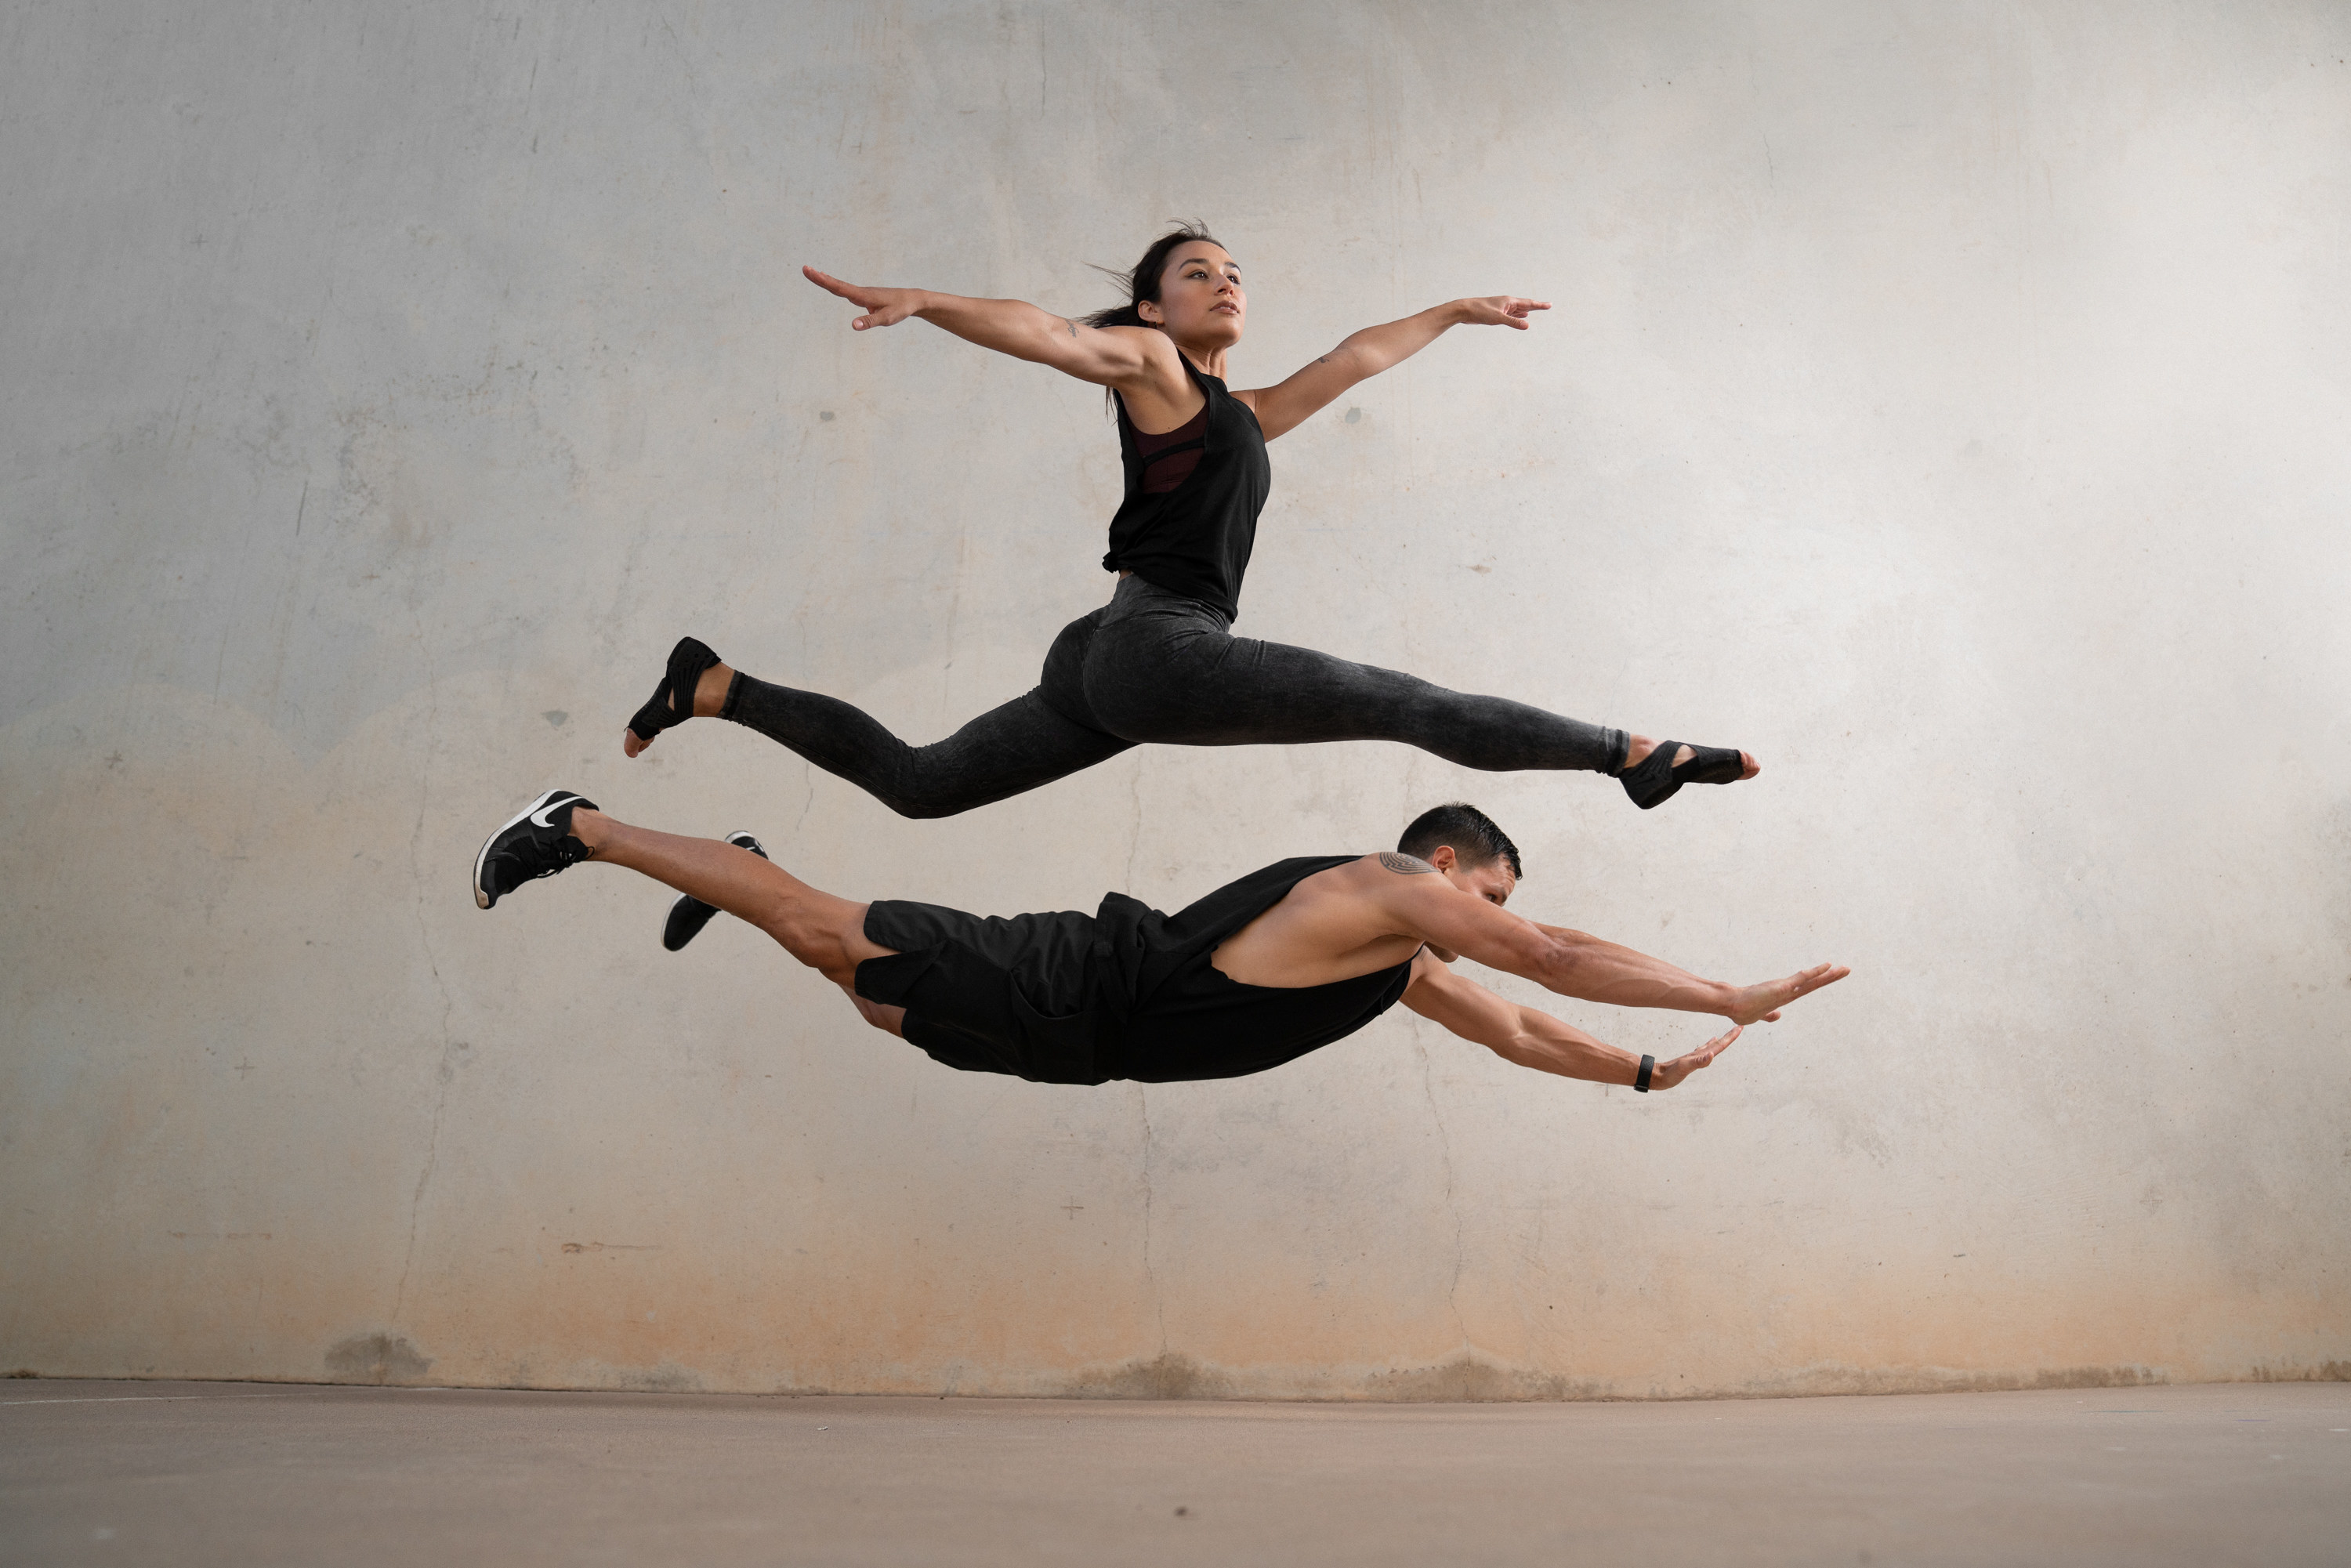 A woman in black and a man in black shorts and tank top leaping, the woman over the man.